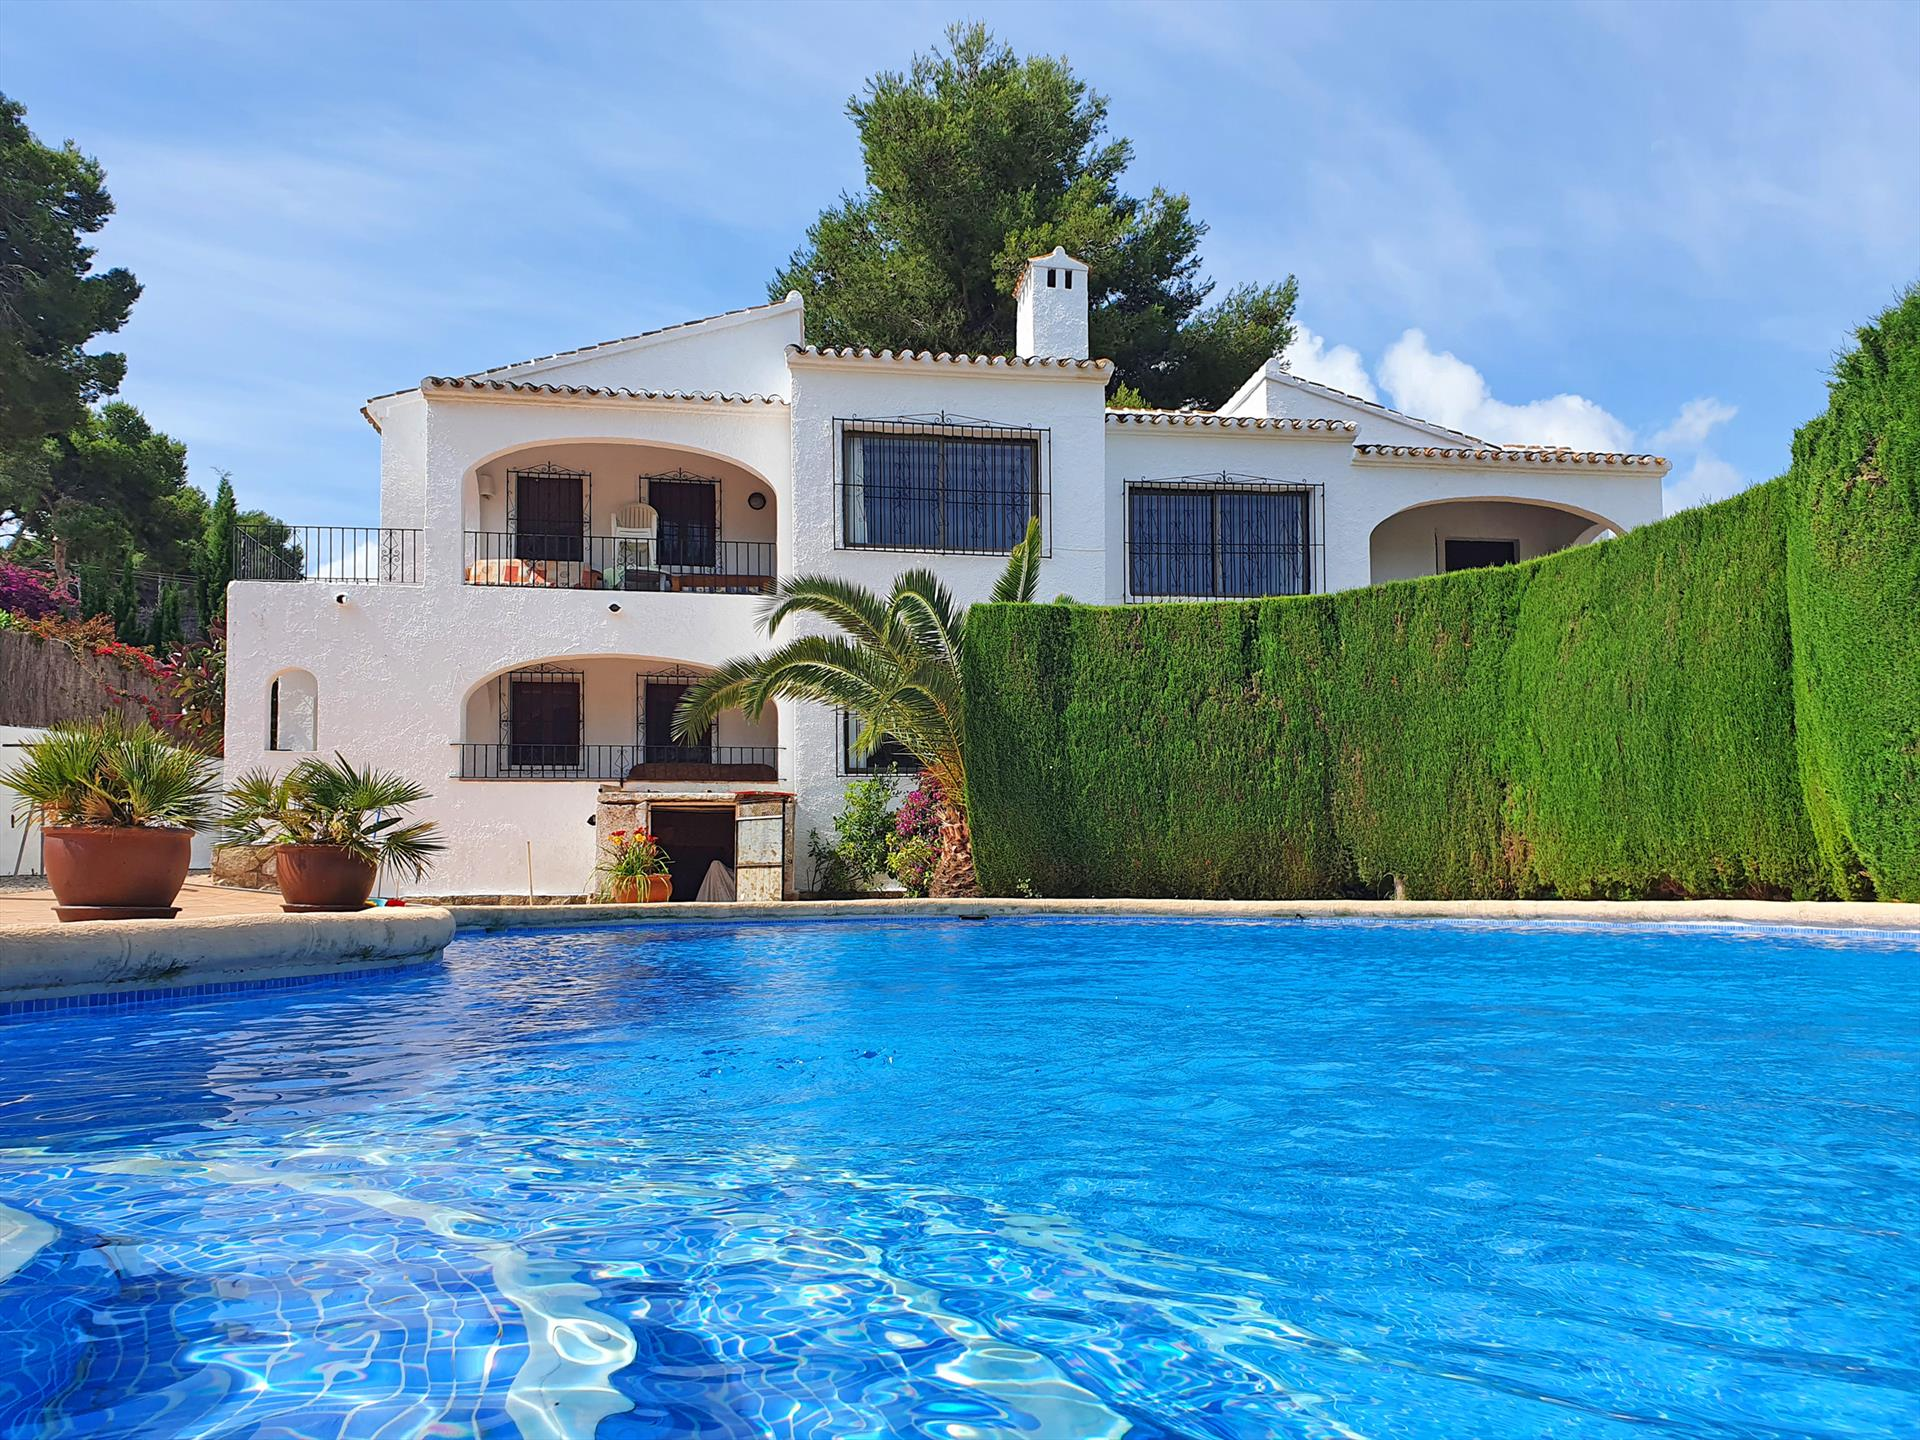 Finca Campo Bello Apartamento A,Finca Campo Bello is a lovely complex in Javea consisting of a total of 5 appartments for 4 or 6 persons each, it has a.....